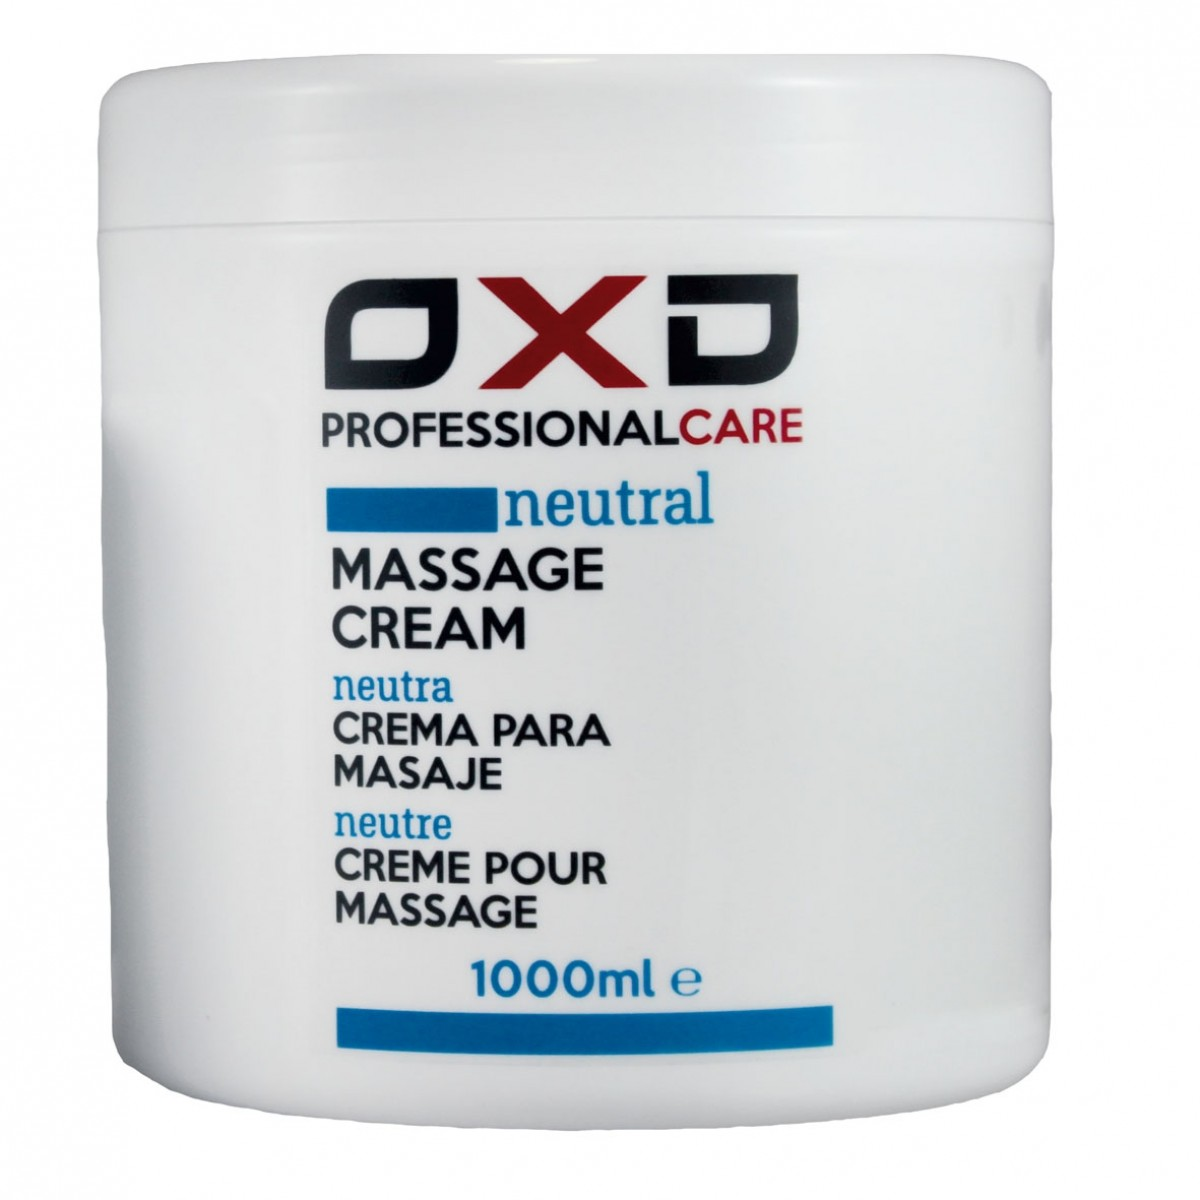 OXD Neutral massage creme 1000 ml.-31